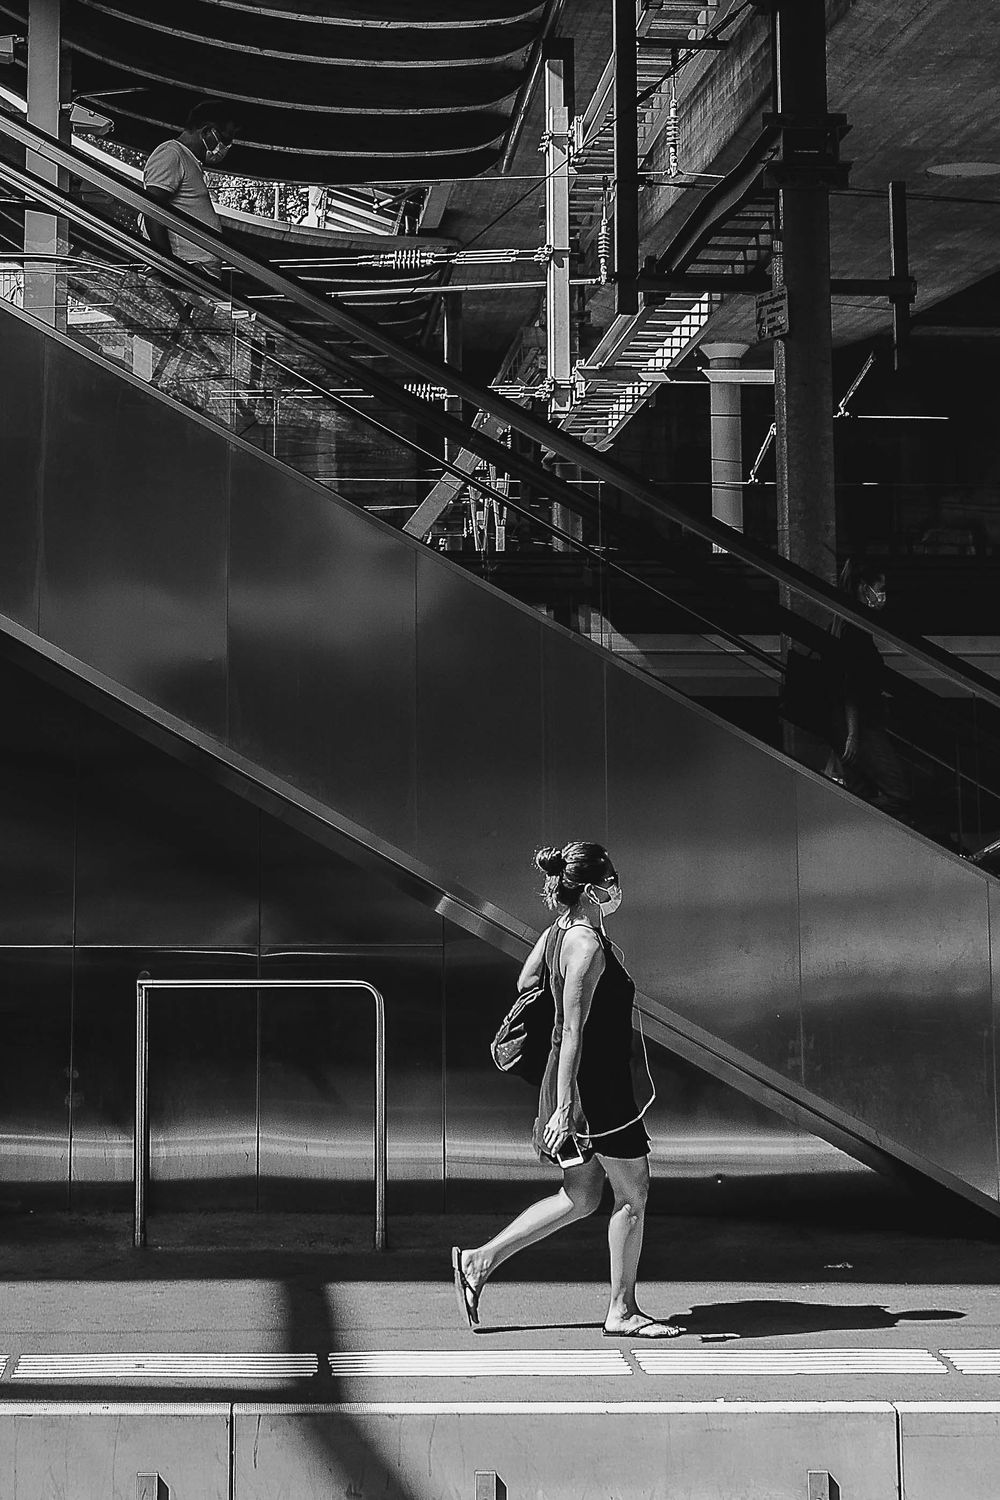 Street photography - image 1 - student project